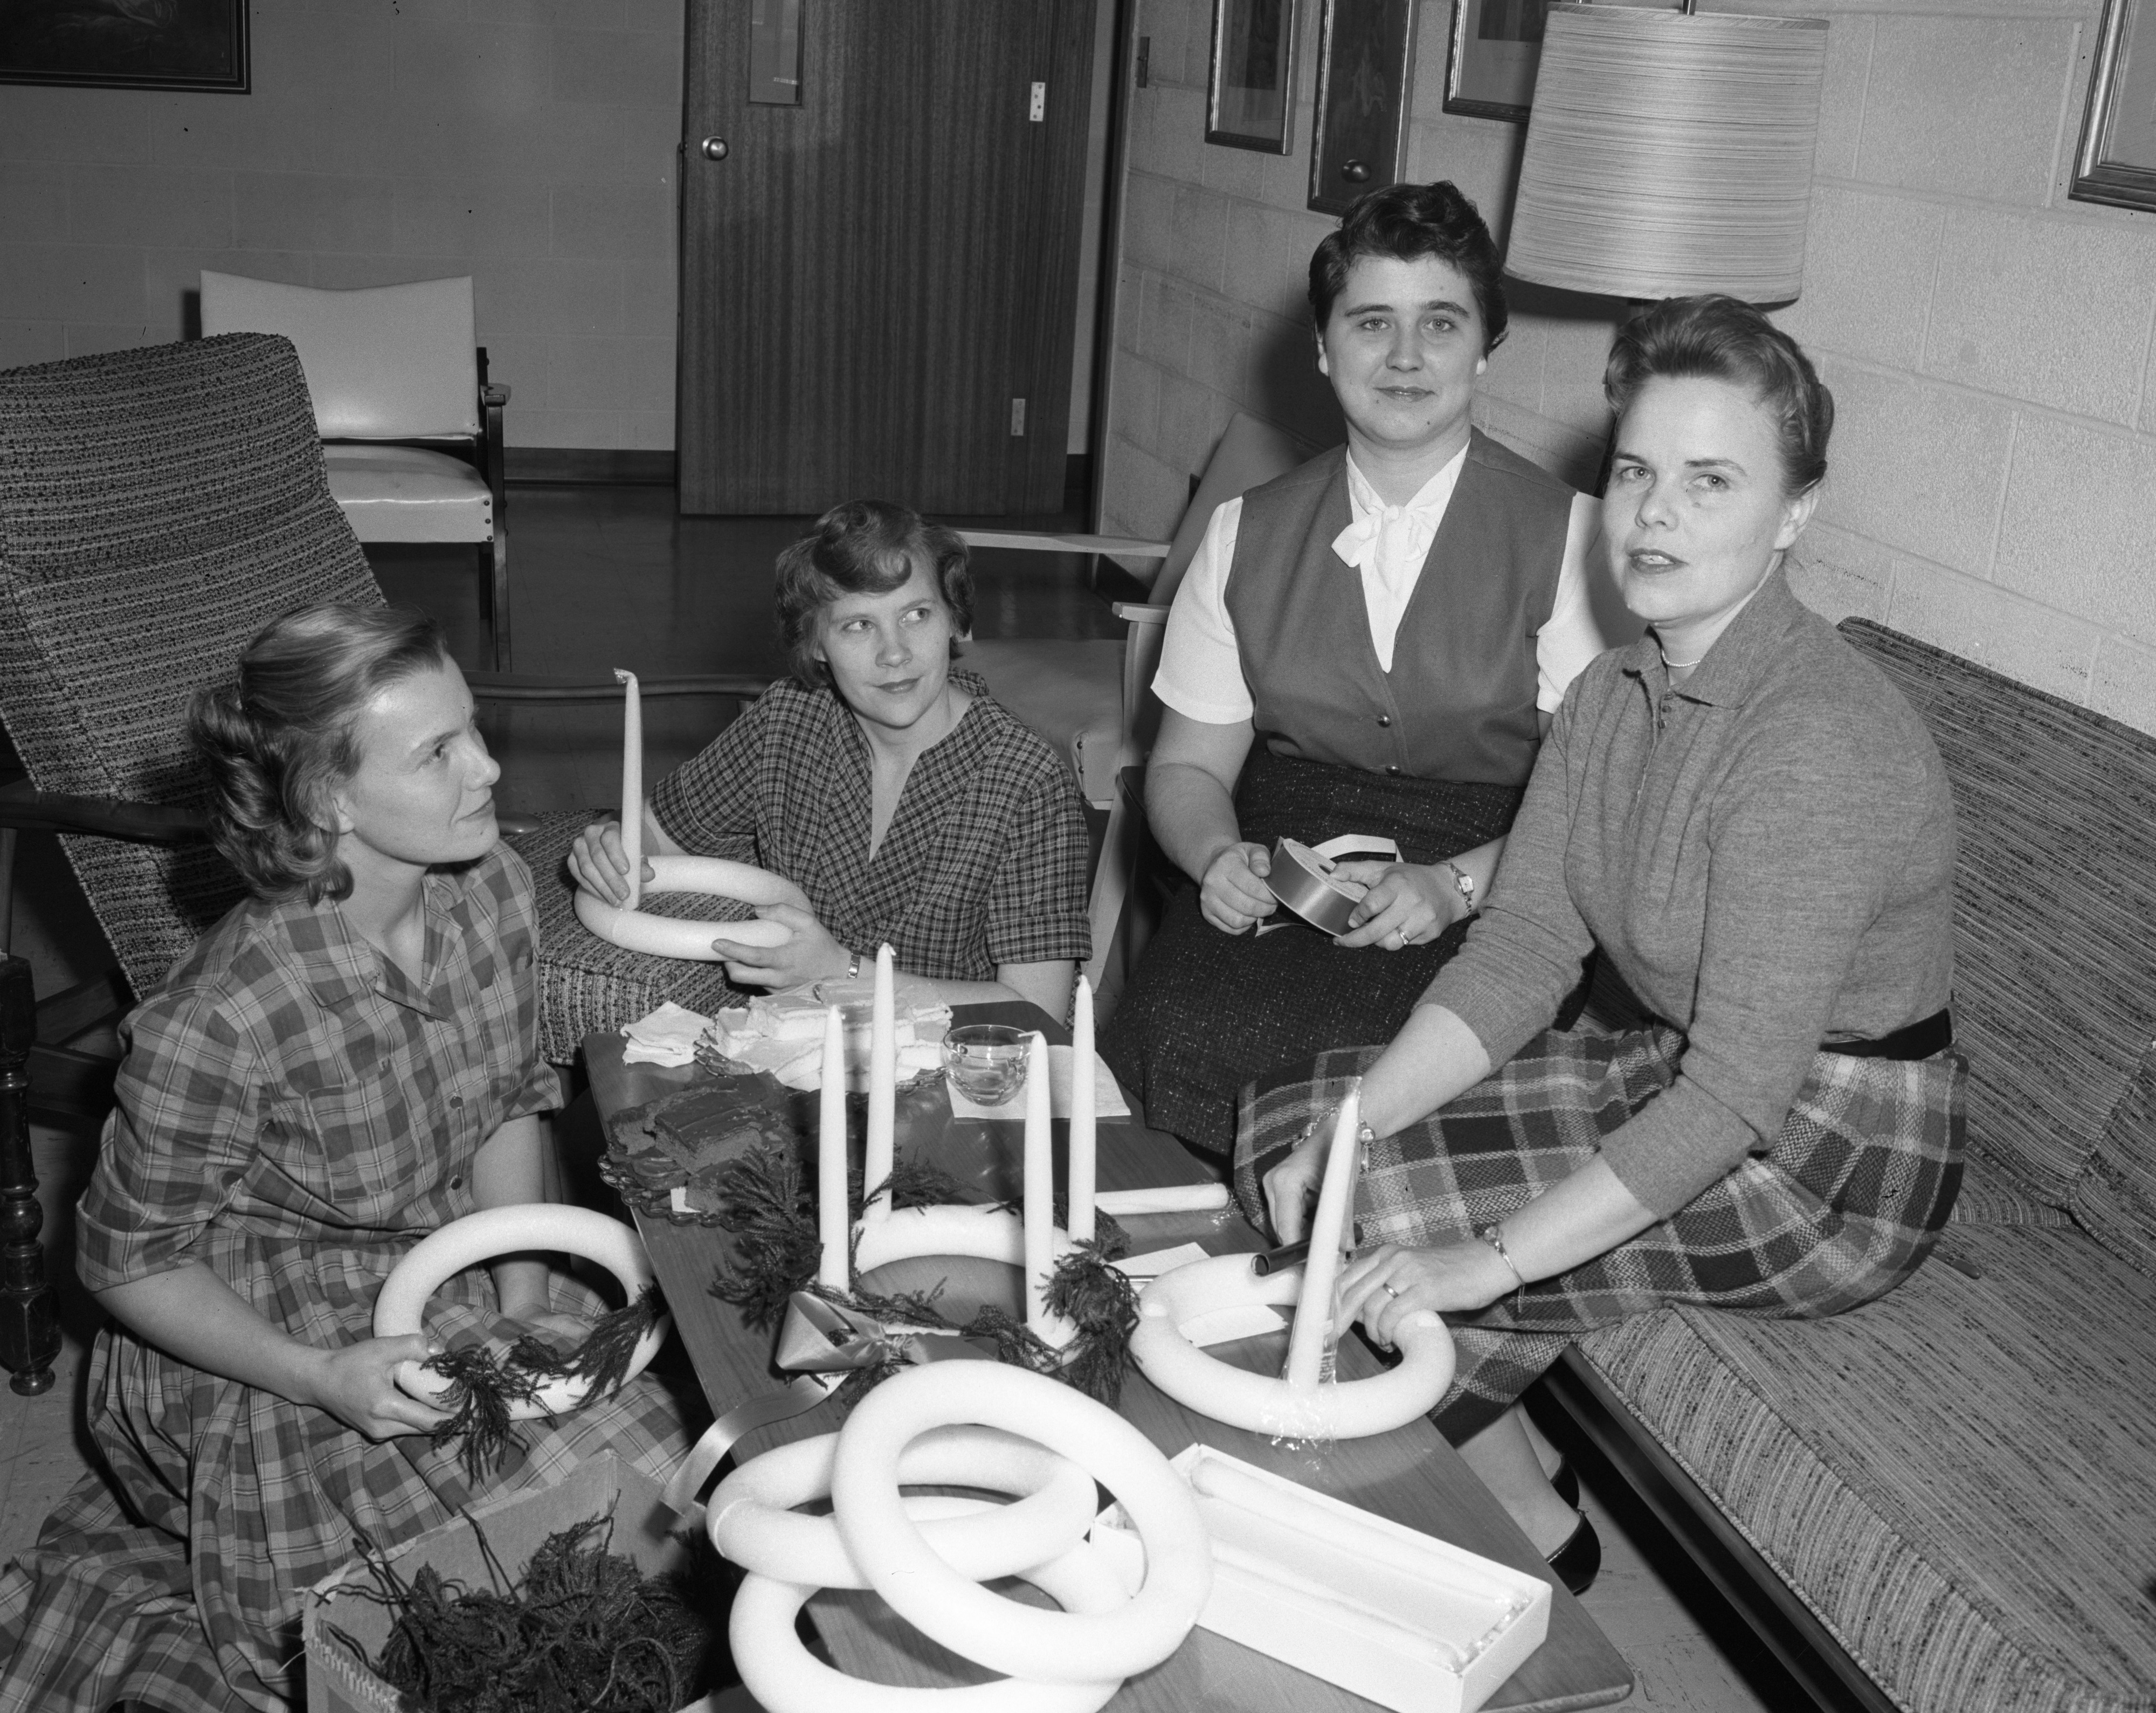 Women Make Advent Wreathes for St. Luke's Episcopal Church, October 1960 image